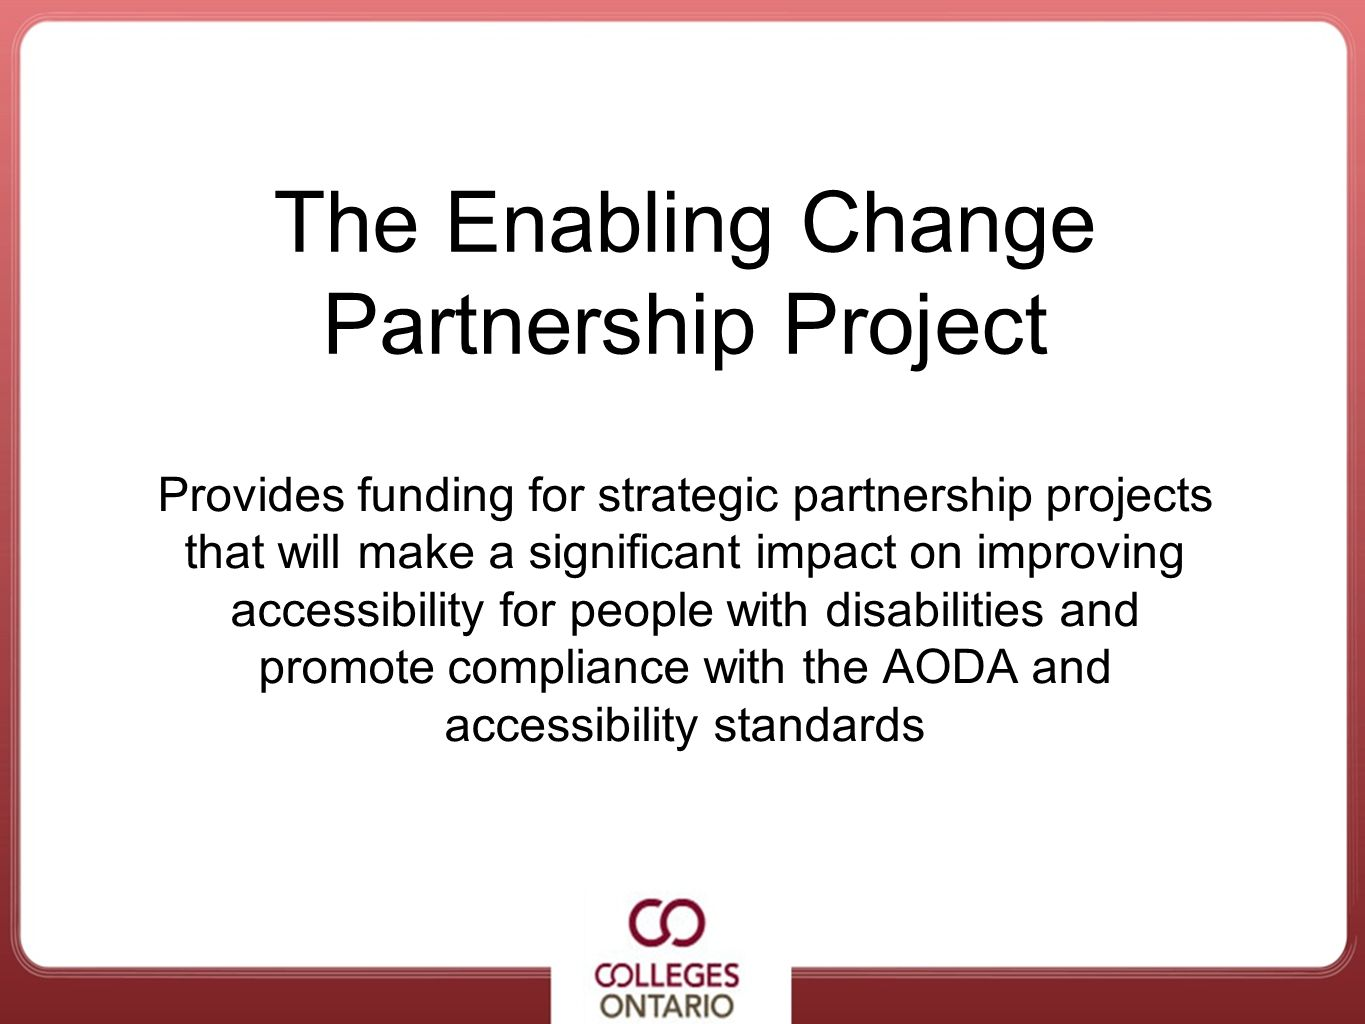 The Enabling Change Partnership Project Provides funding for strategic partnership projects that will make a significant impact on improving accessibi